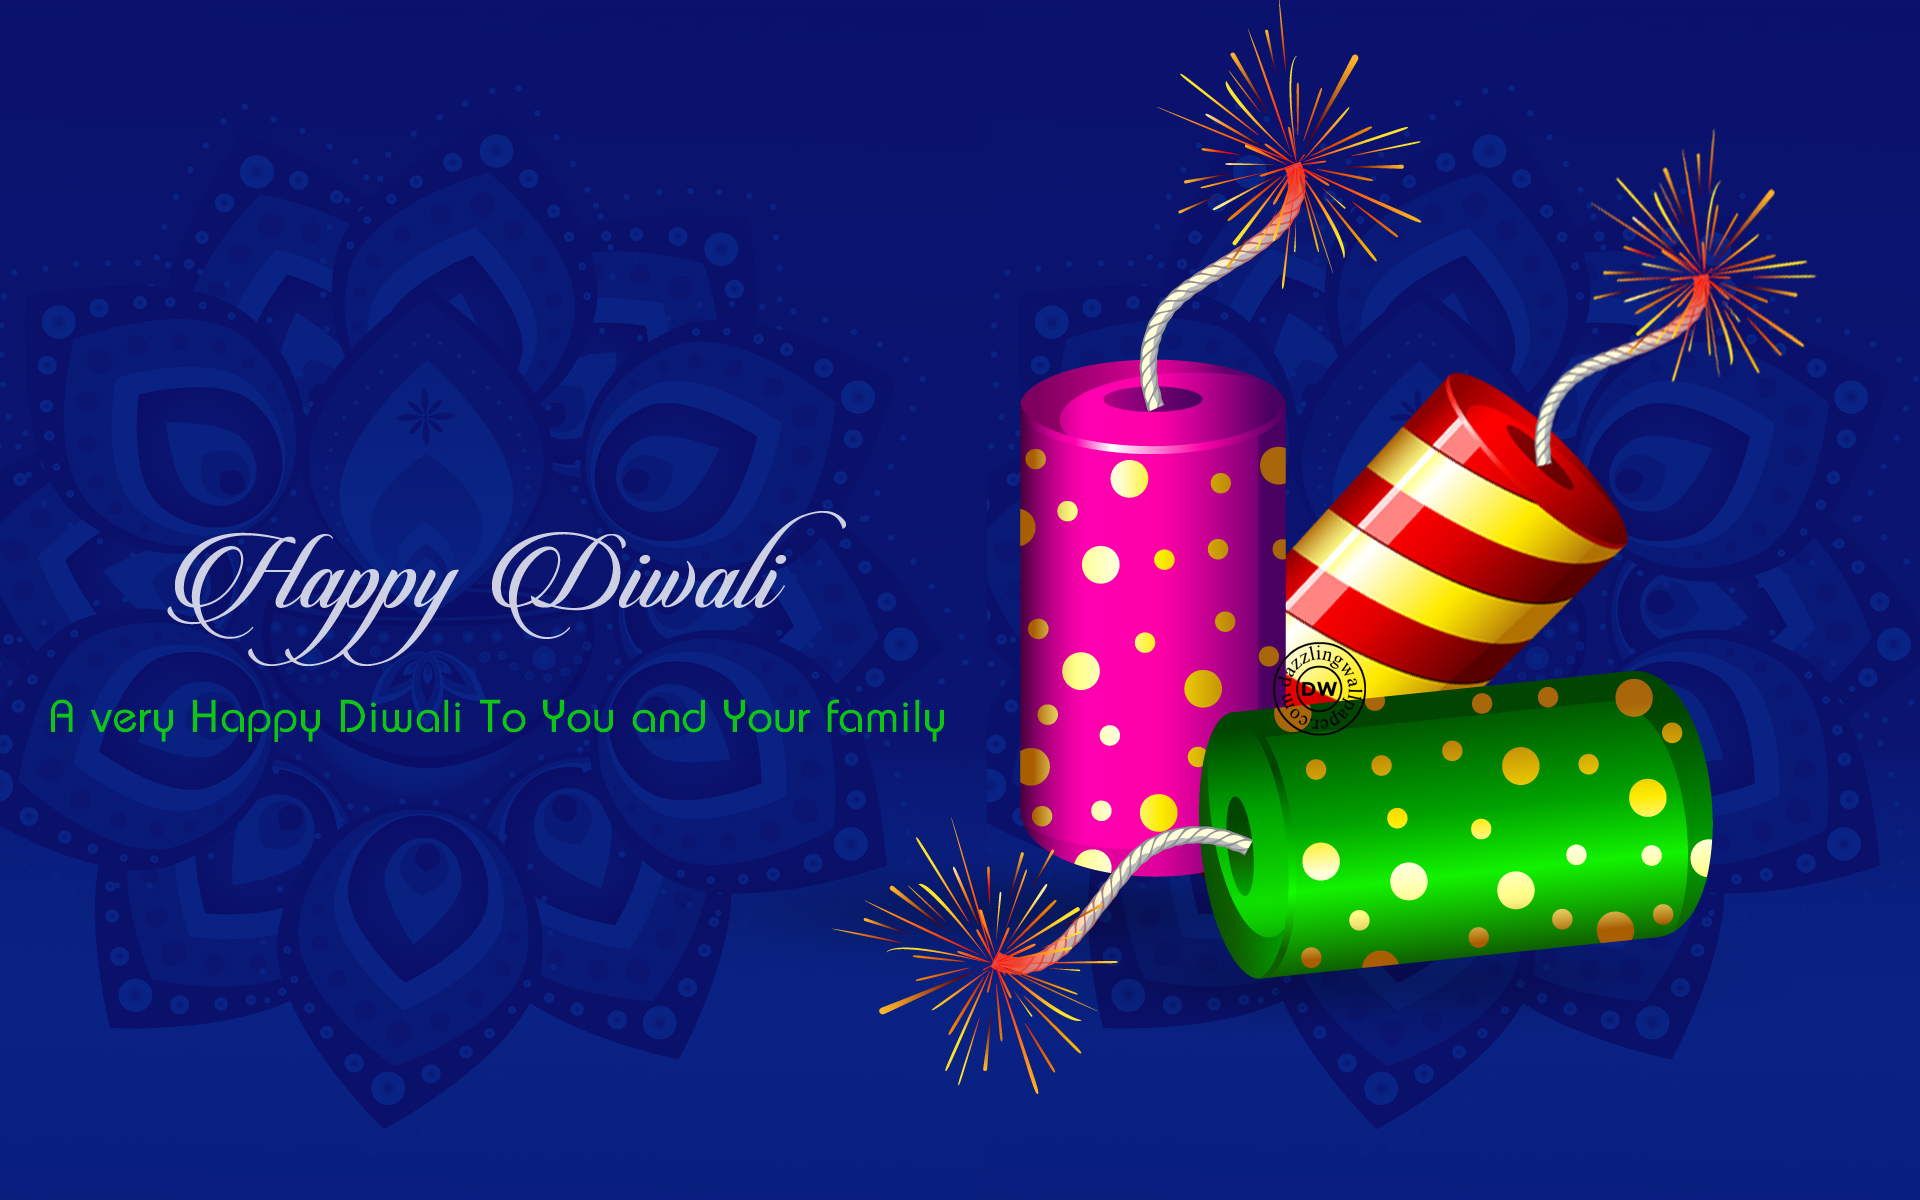 Diwali Wallpapers, Pictures, Images for Happy Deepavali Wallpaper Hd Widescreen  54lyp